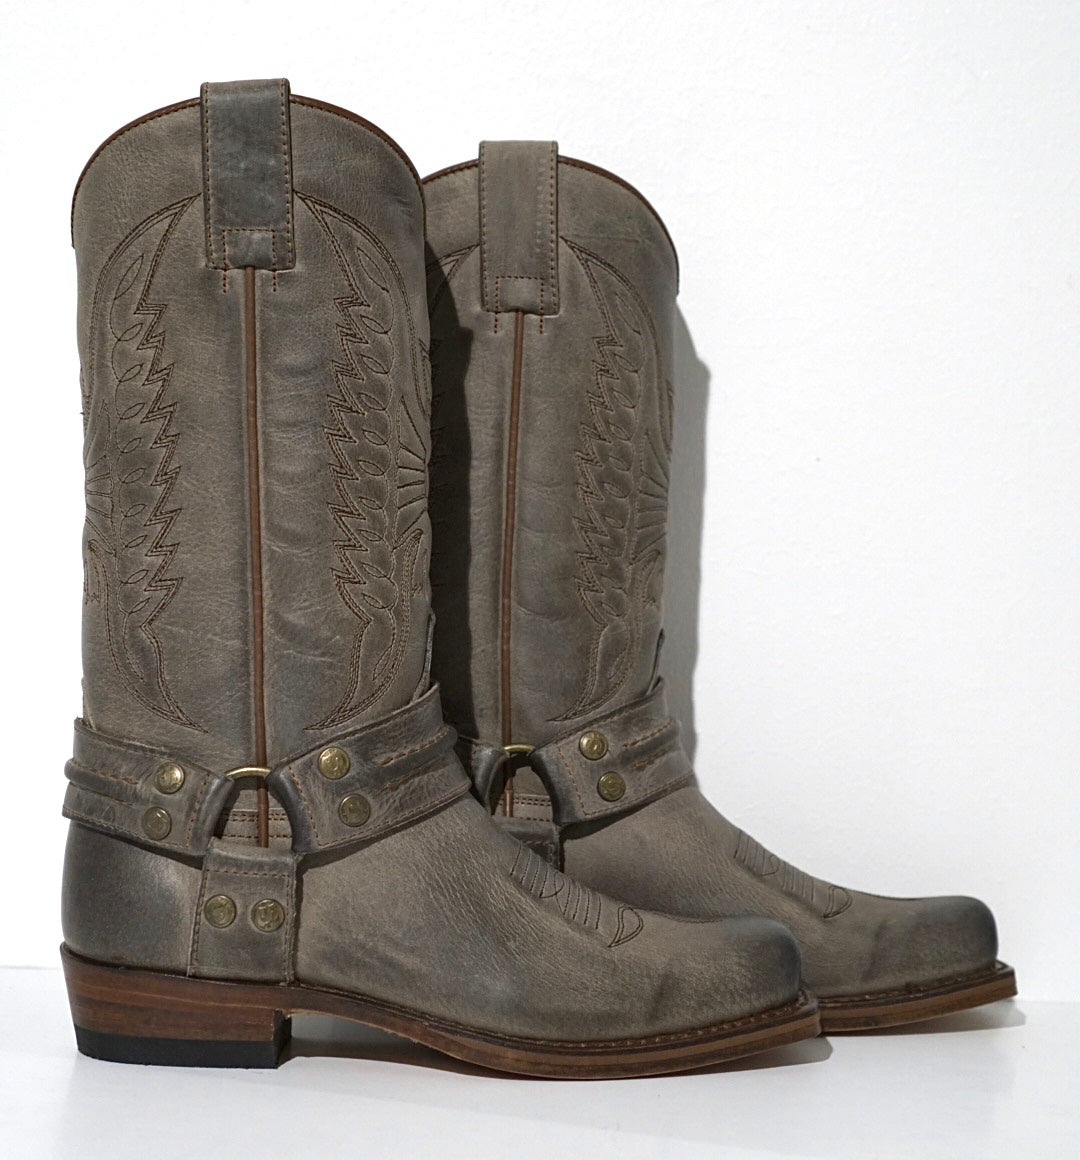 Sendra boots 2621 taupe